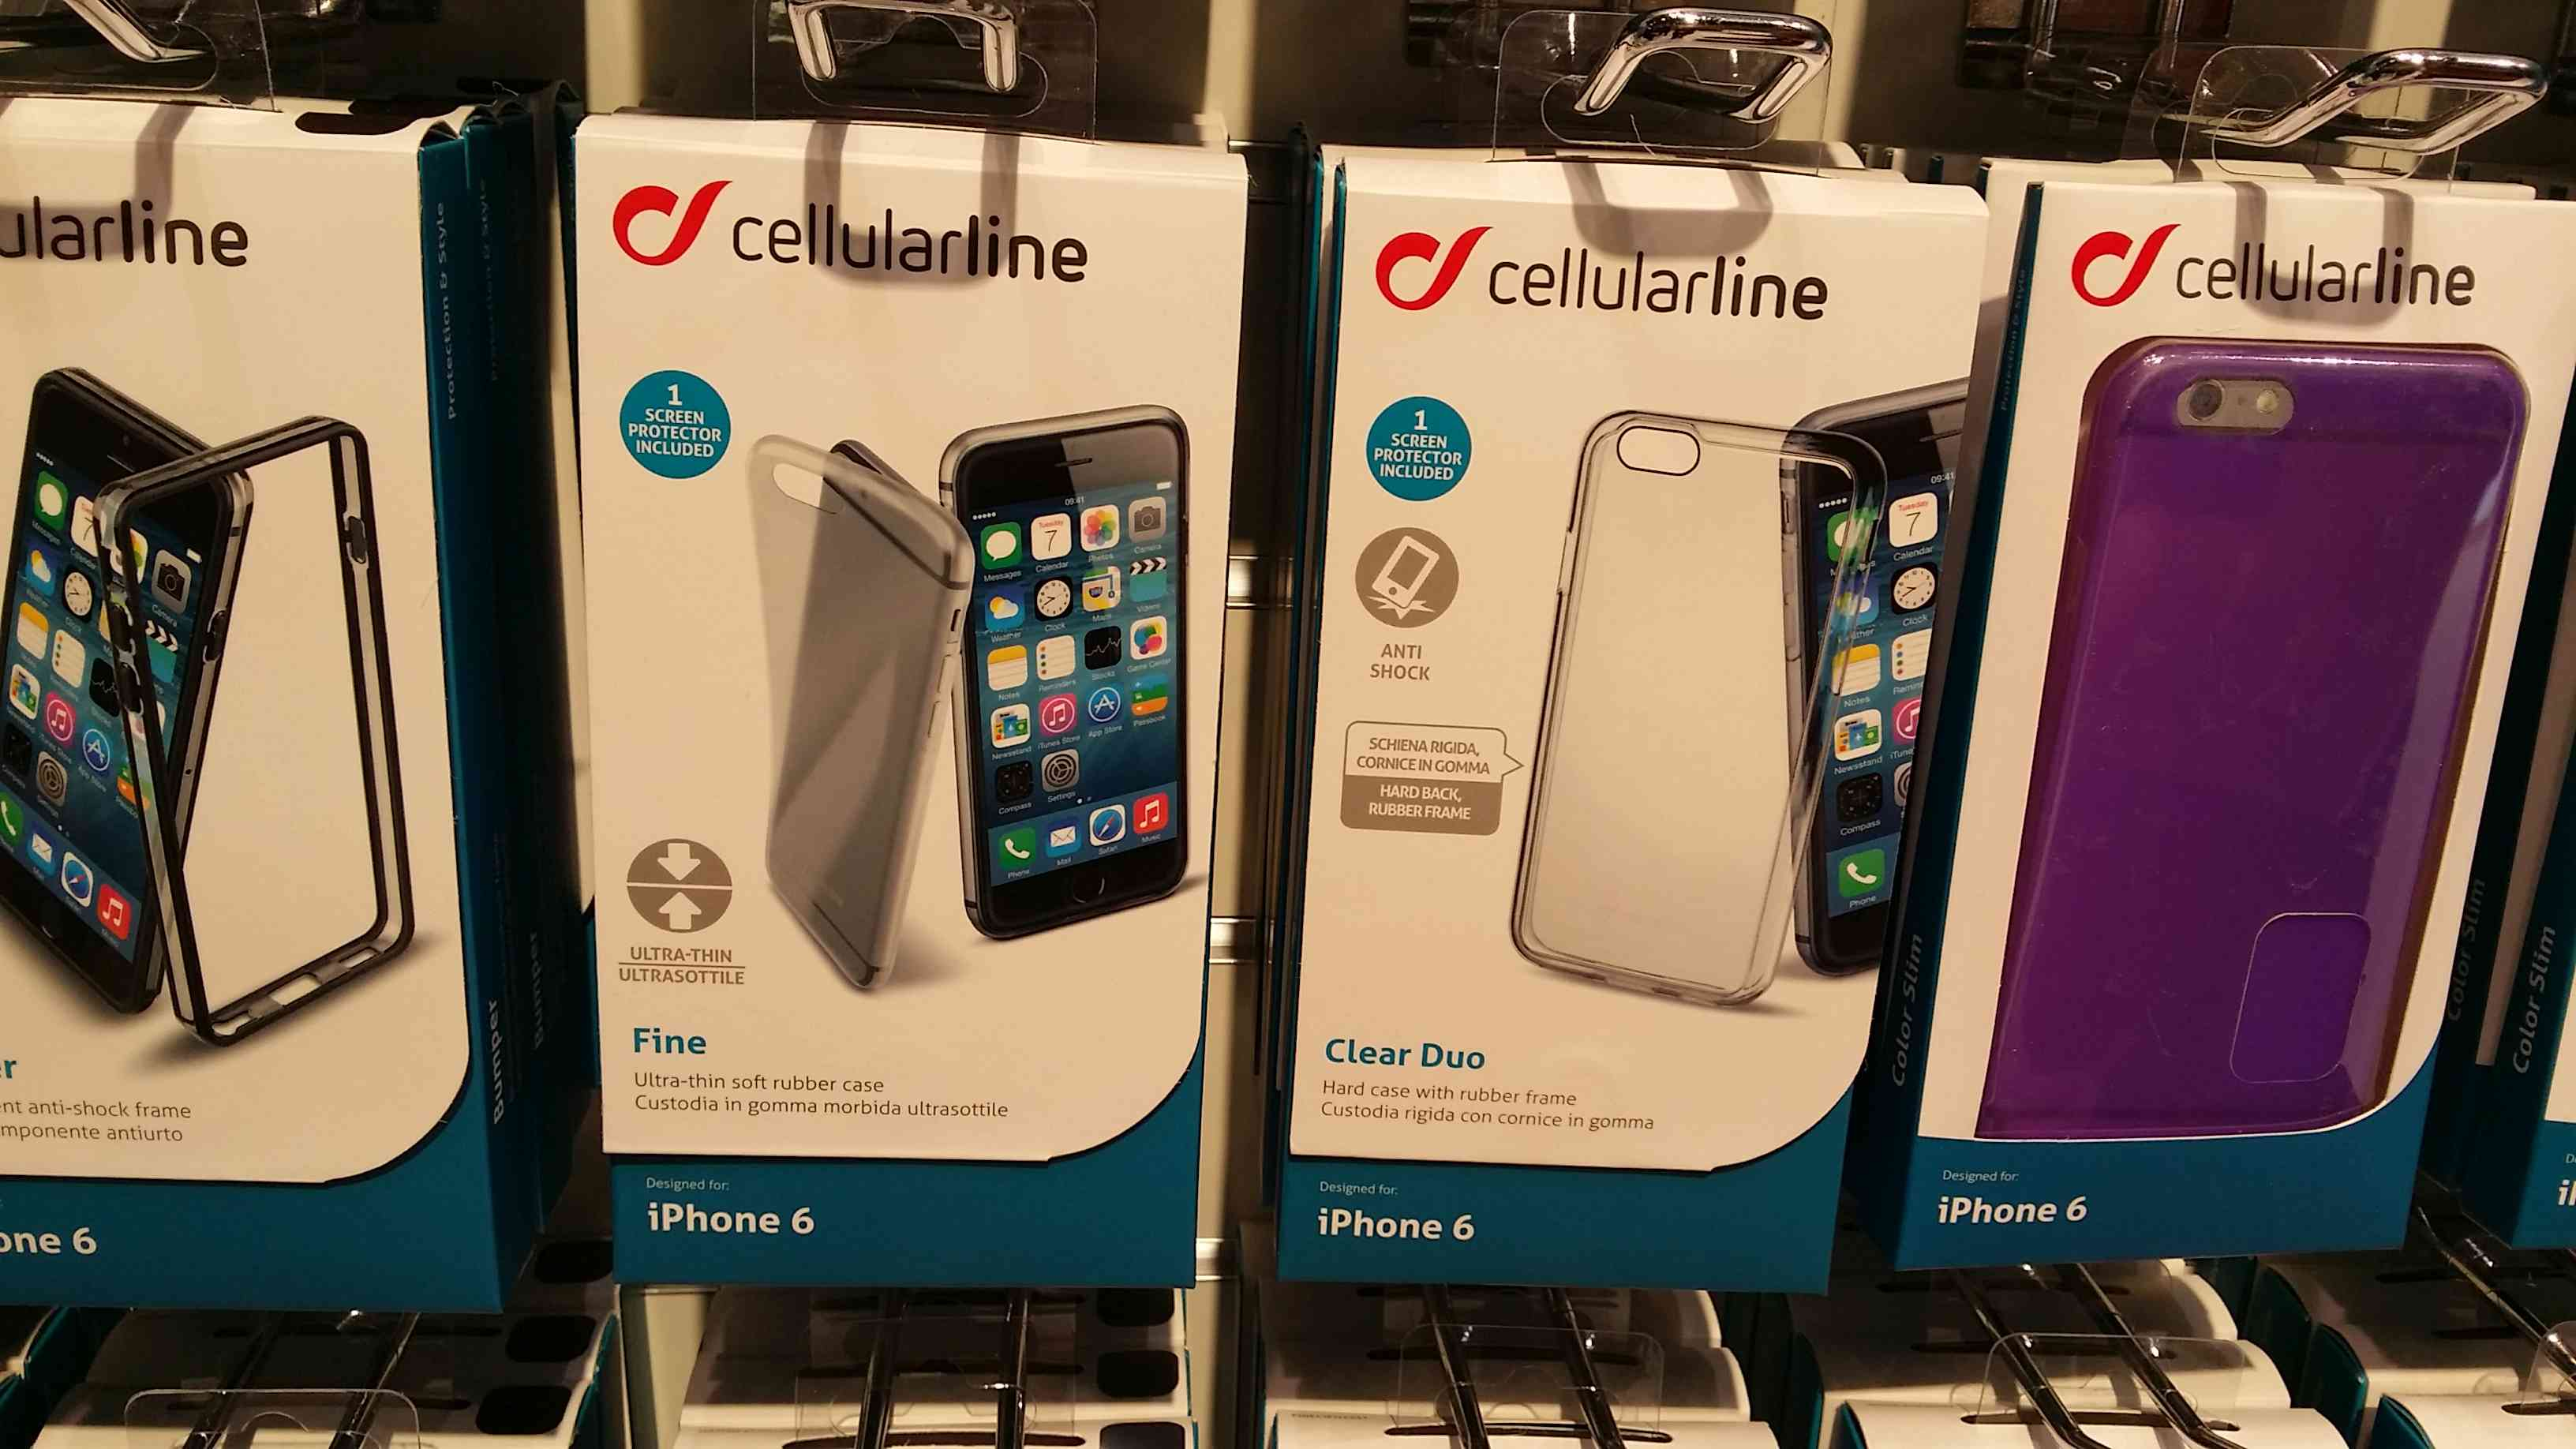 custodia iphone 6 cellular line trasparente